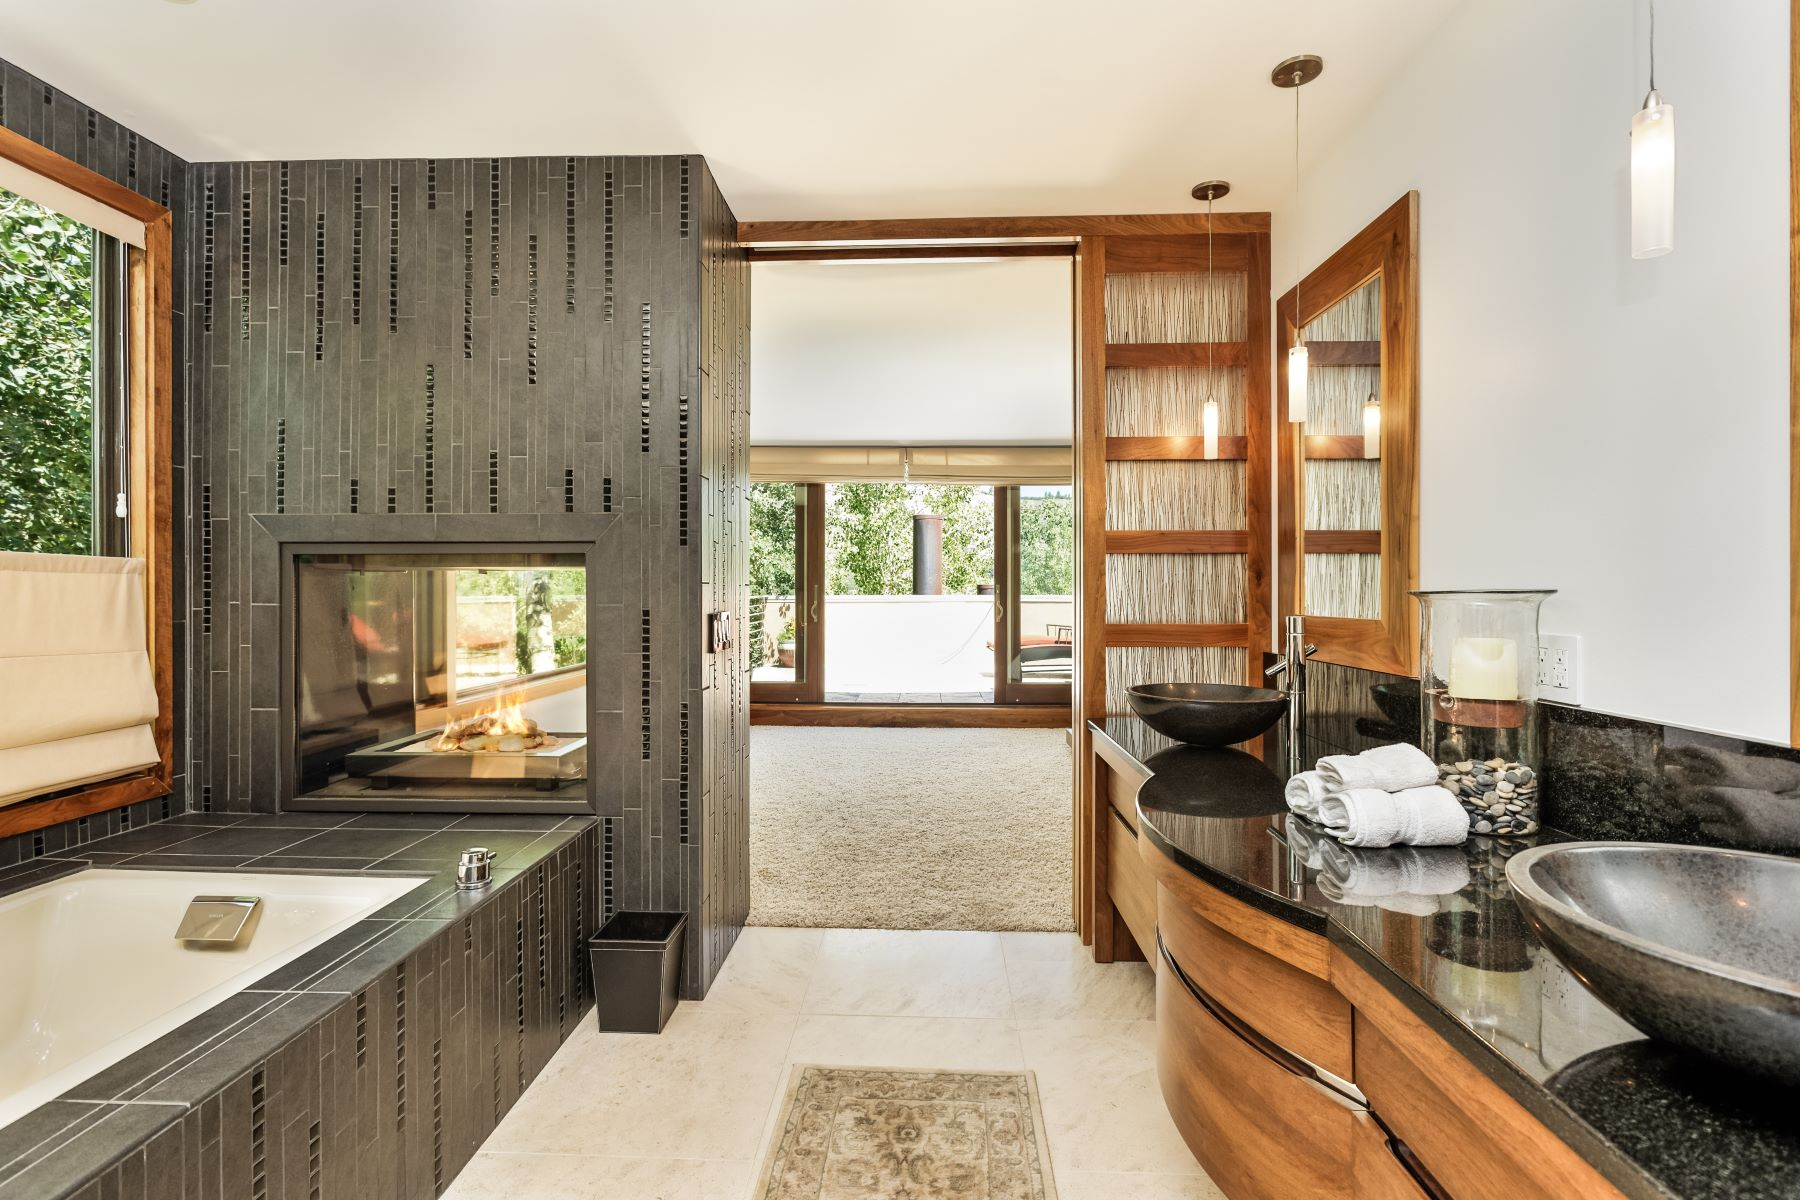 Additional photo for property listing at A Home That Tics All the Required Boxes 406 Ridge Road Snowmass Village, Colorado 81615 United States